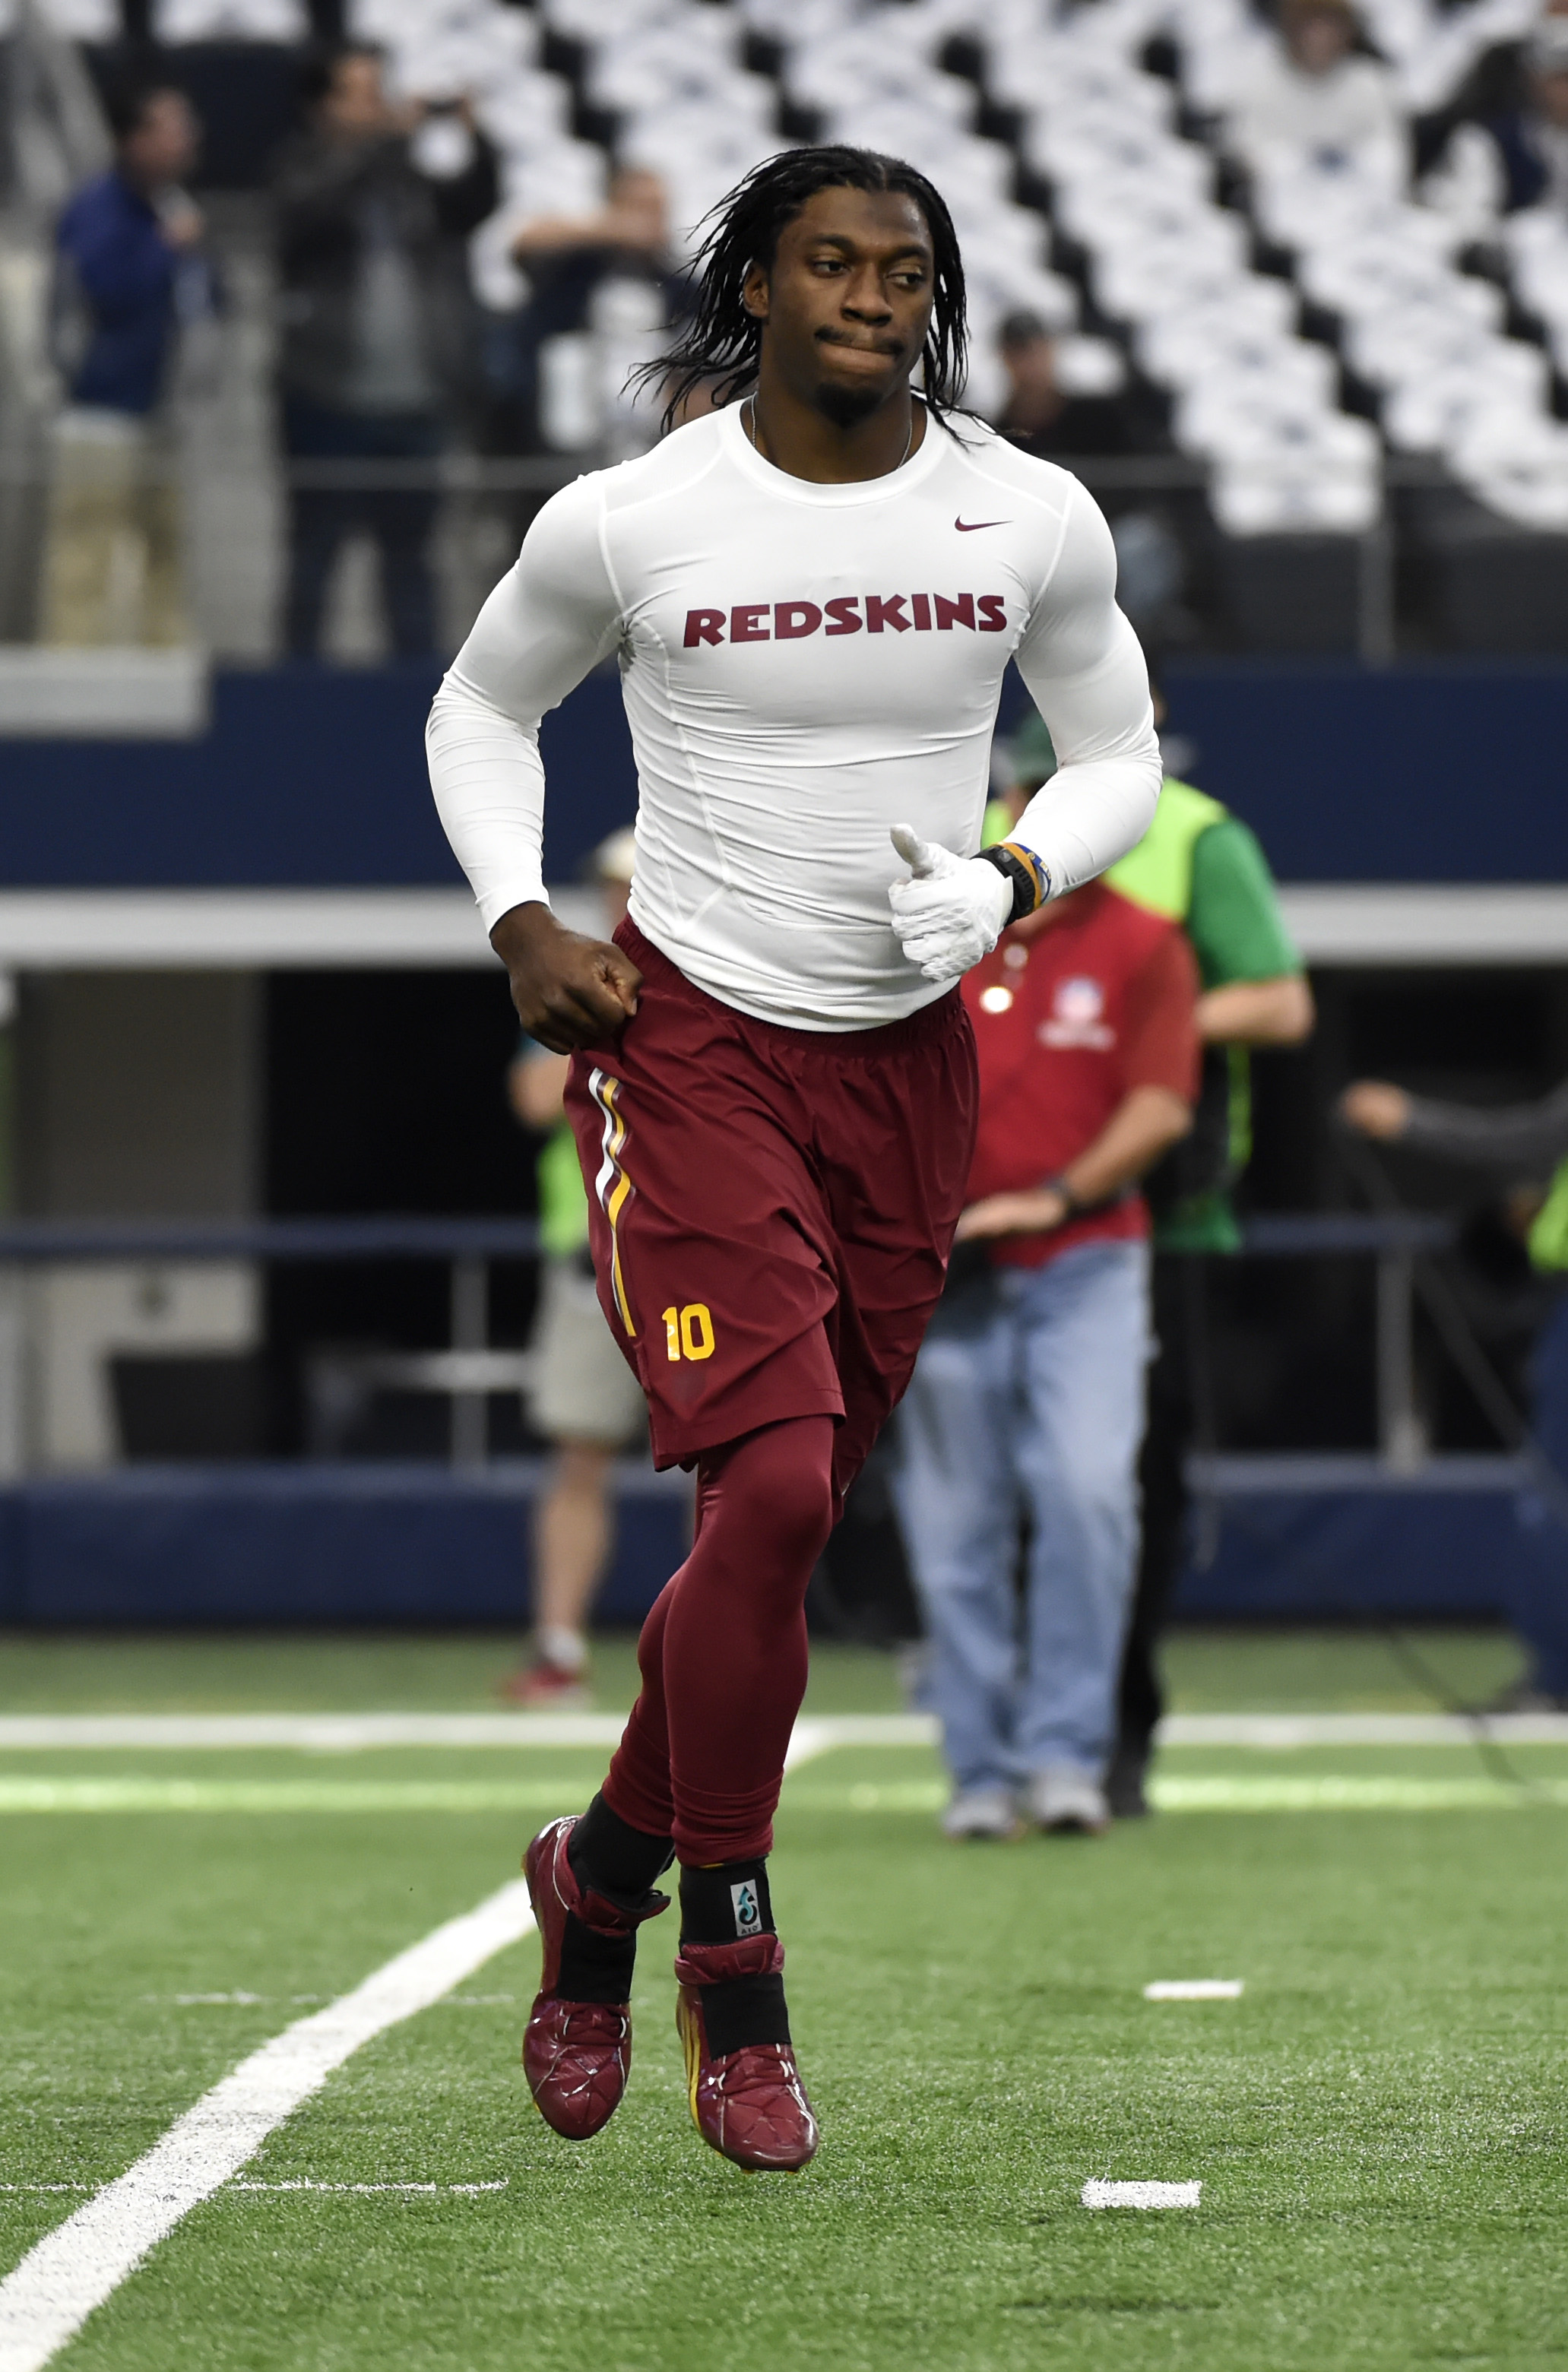 Washington Redskins' Robert Griffin III jogs off the field during warm ups before an NFL football game against the Dallas Cowboys, Sunday, Jan. 3, 2016, in Arlington , Texas. (AP Photo/Michael Ainsworth)